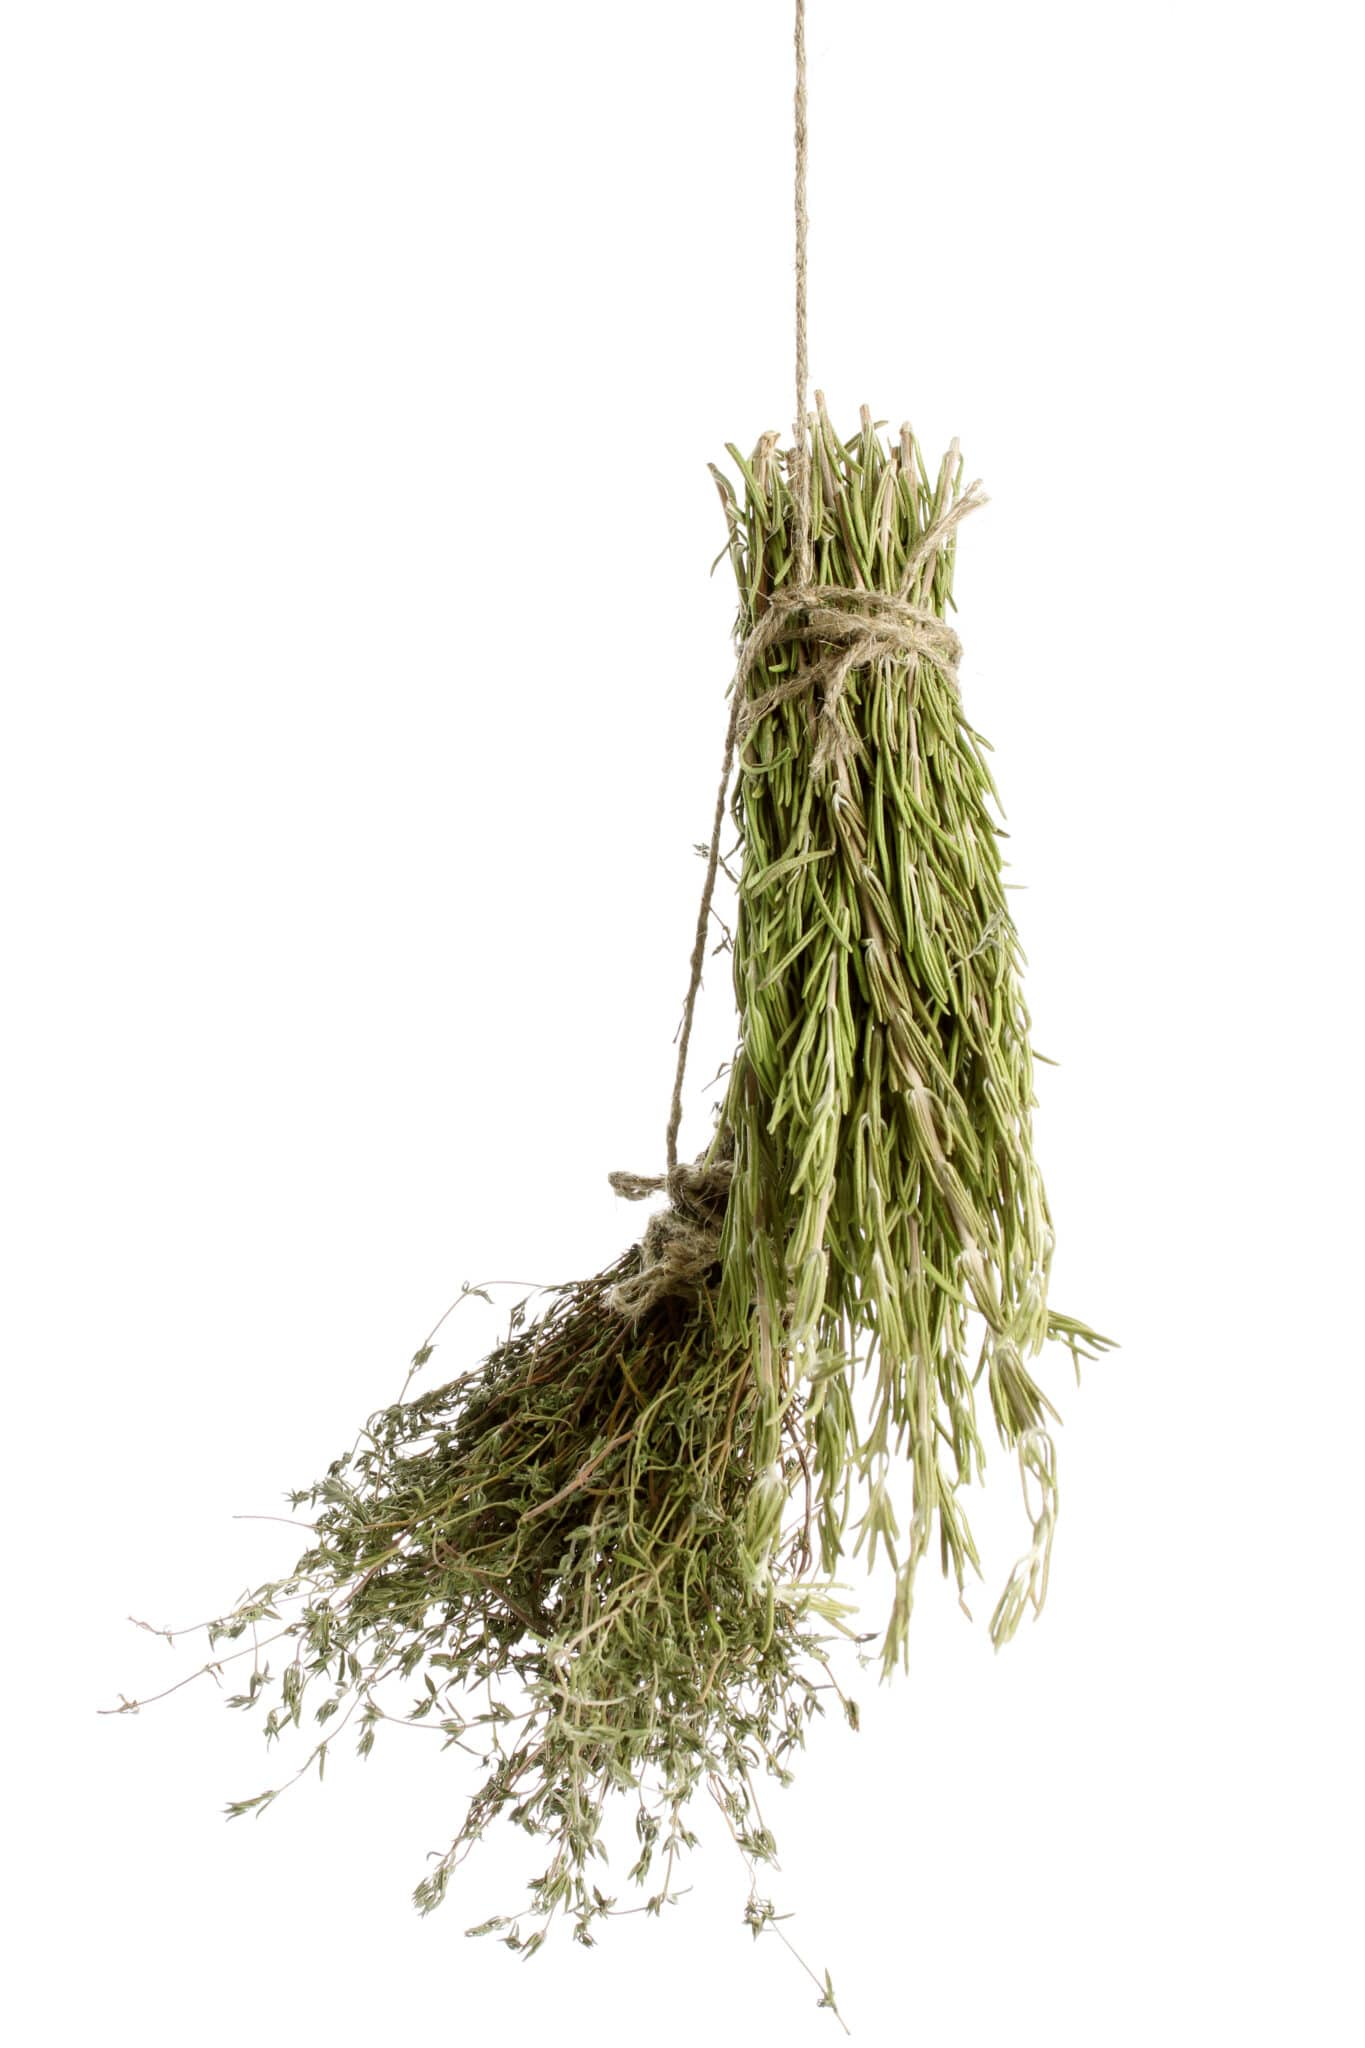 dried herbs, isolated on white